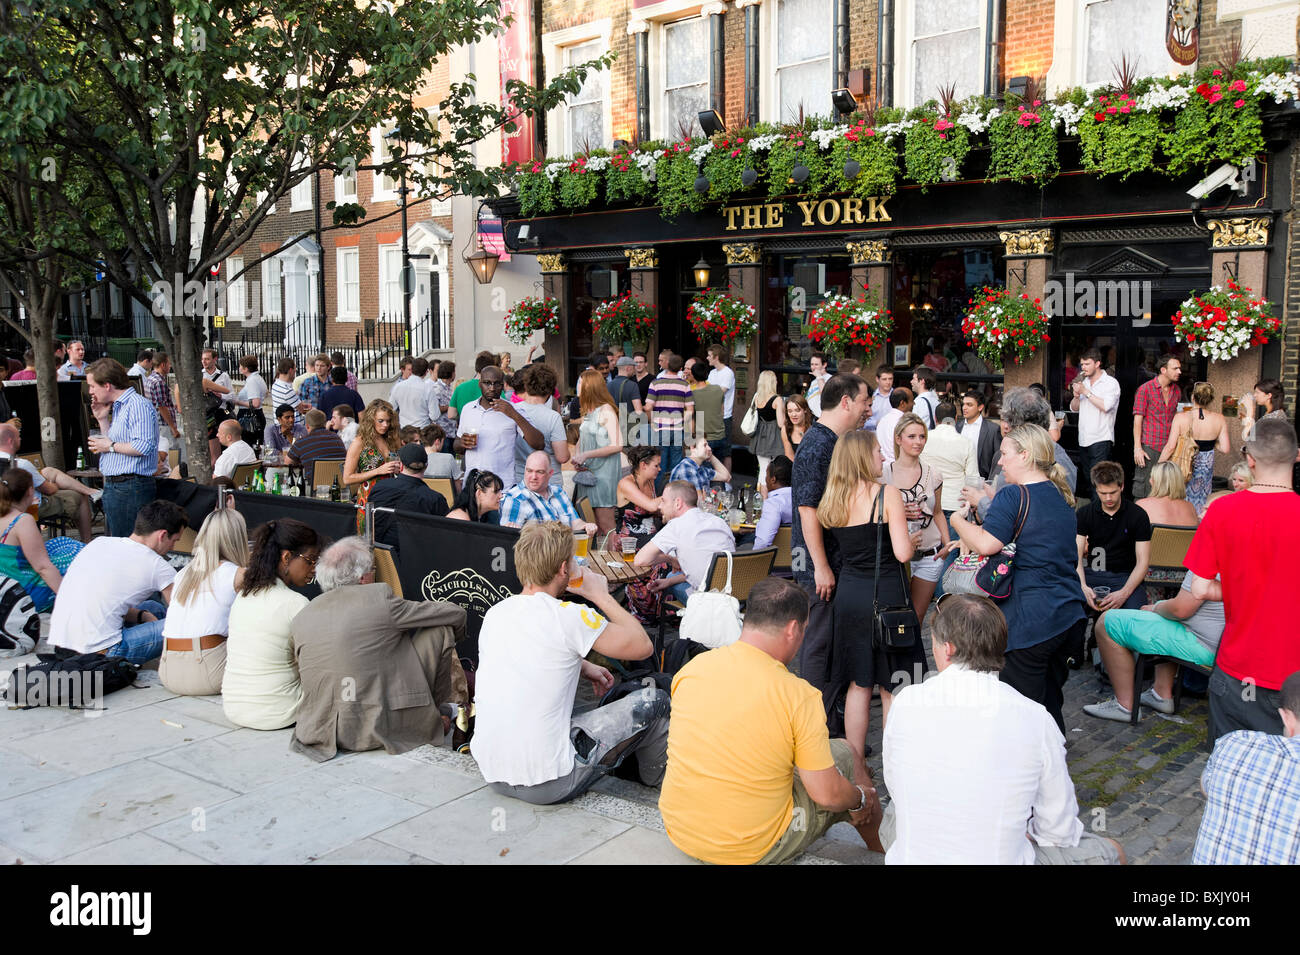 The York pub on Upper Street, Islington, London, England, UK - Stock Image